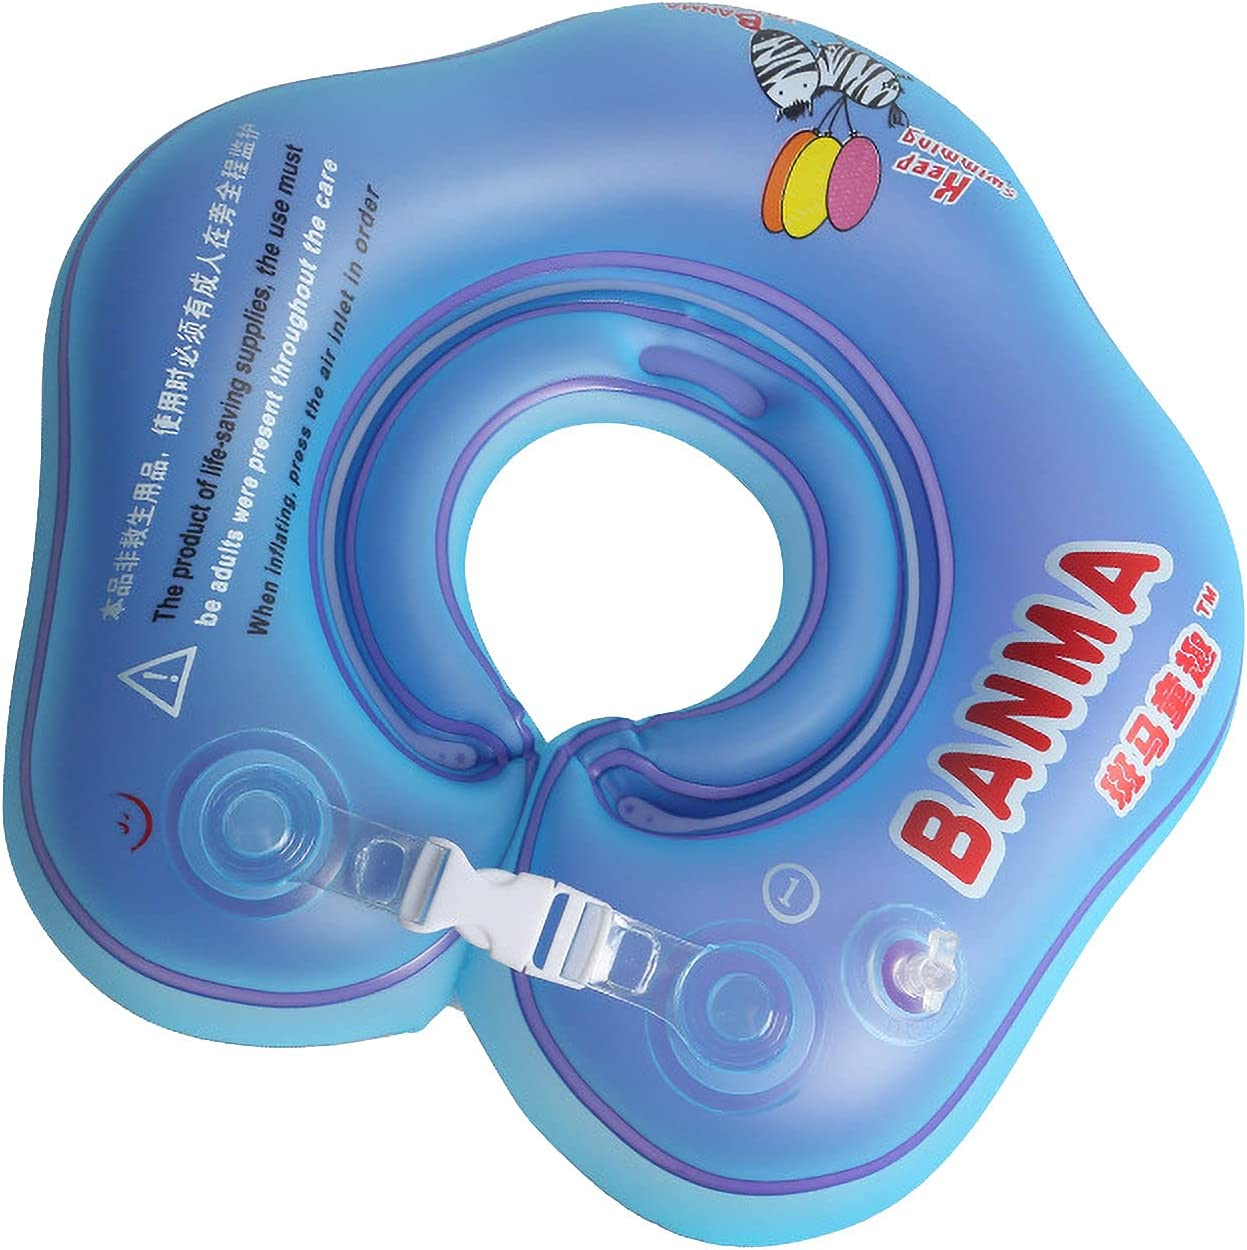 Inflatable Regular discount Baby Swimming Genuine Free Shipping Float Toy Pool Ring